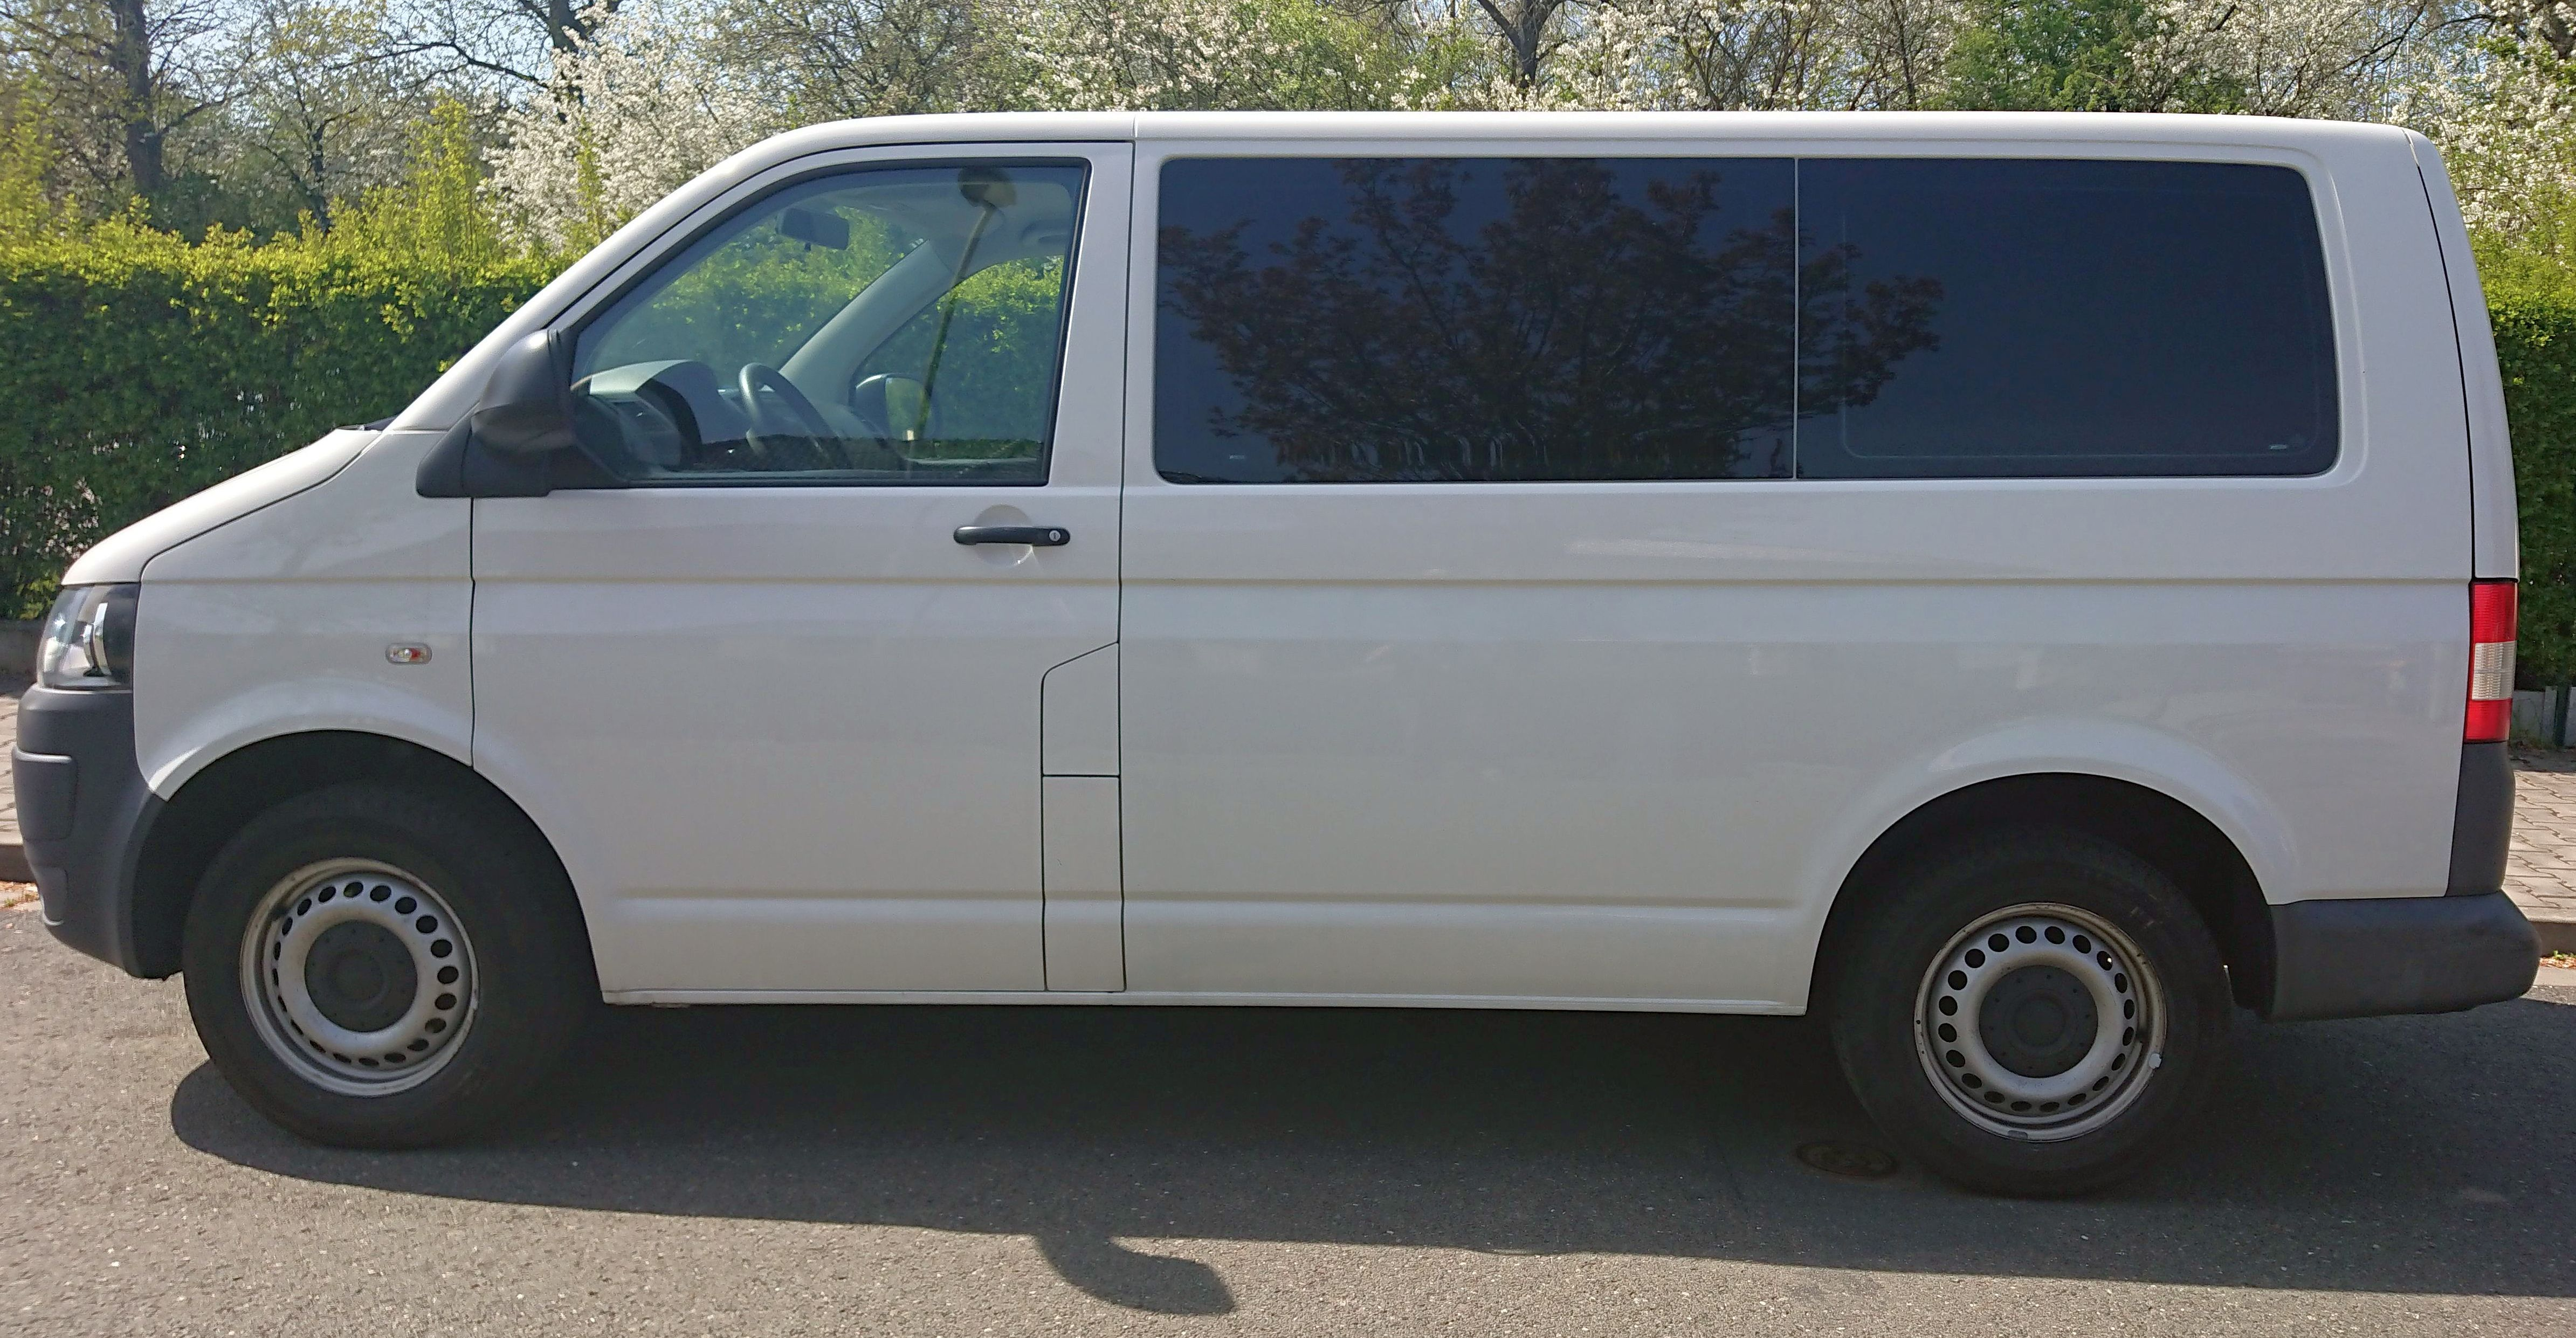 VW Transporter 2.0 TDI